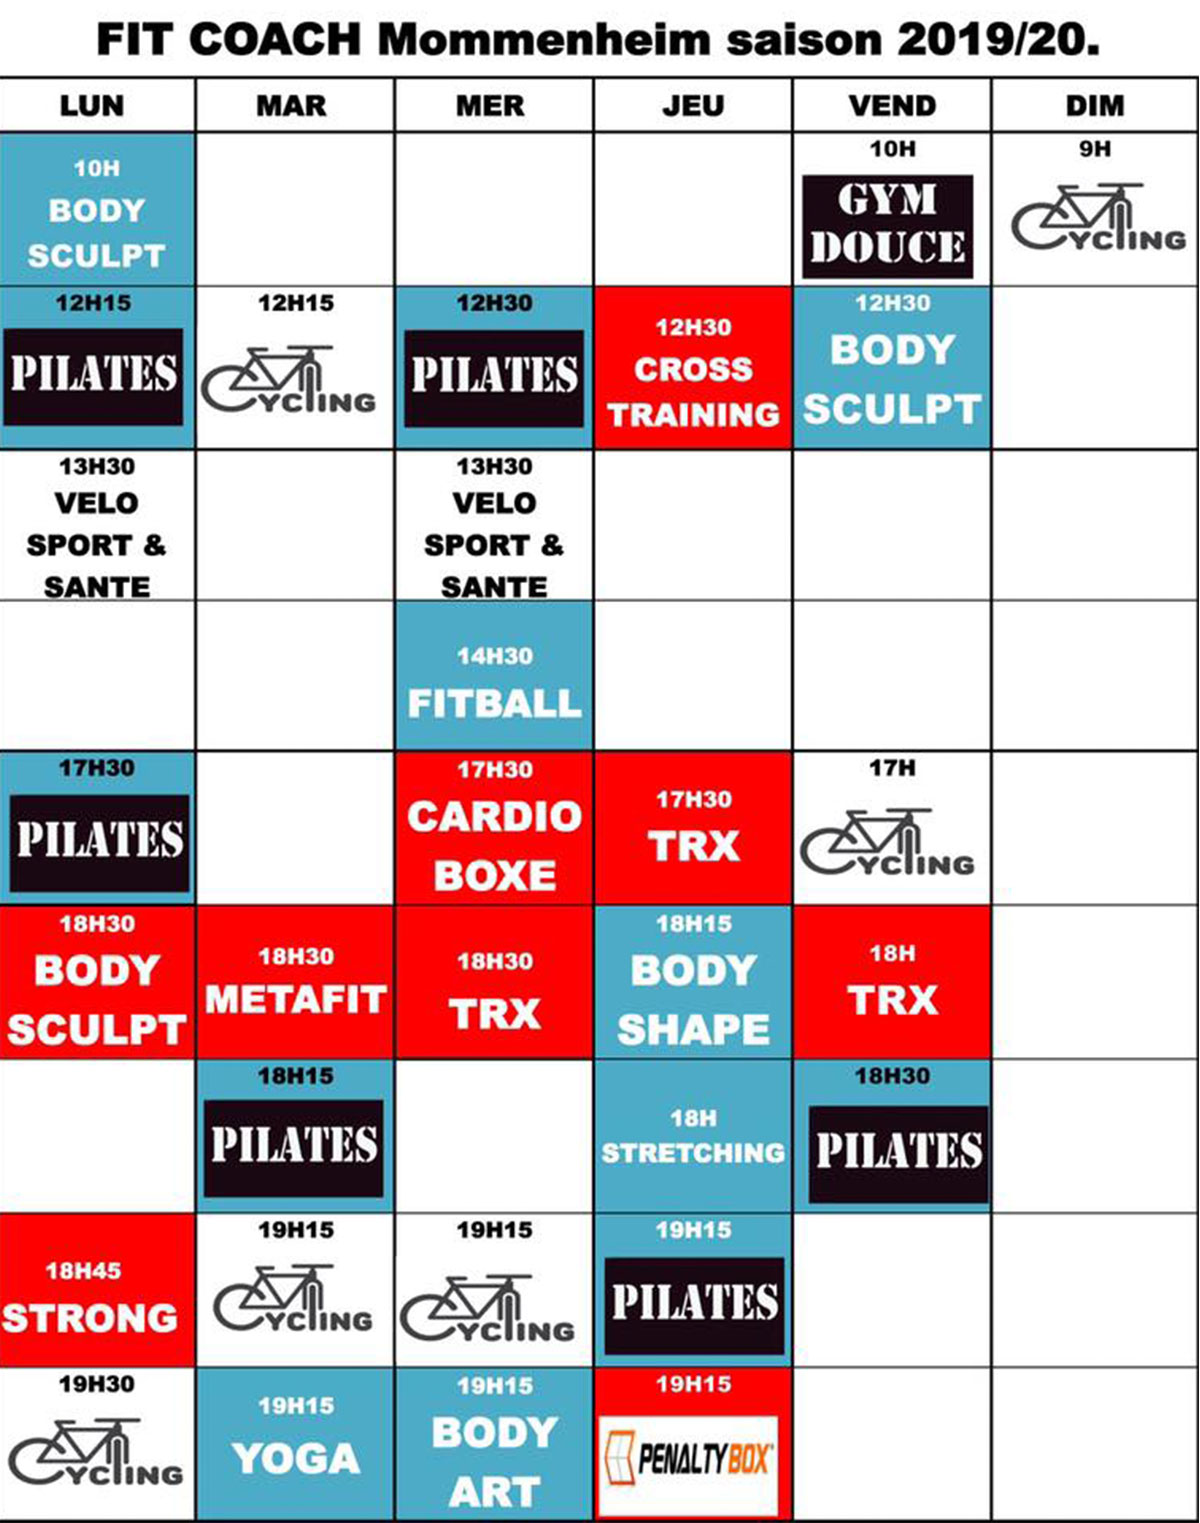 Planning fit coach